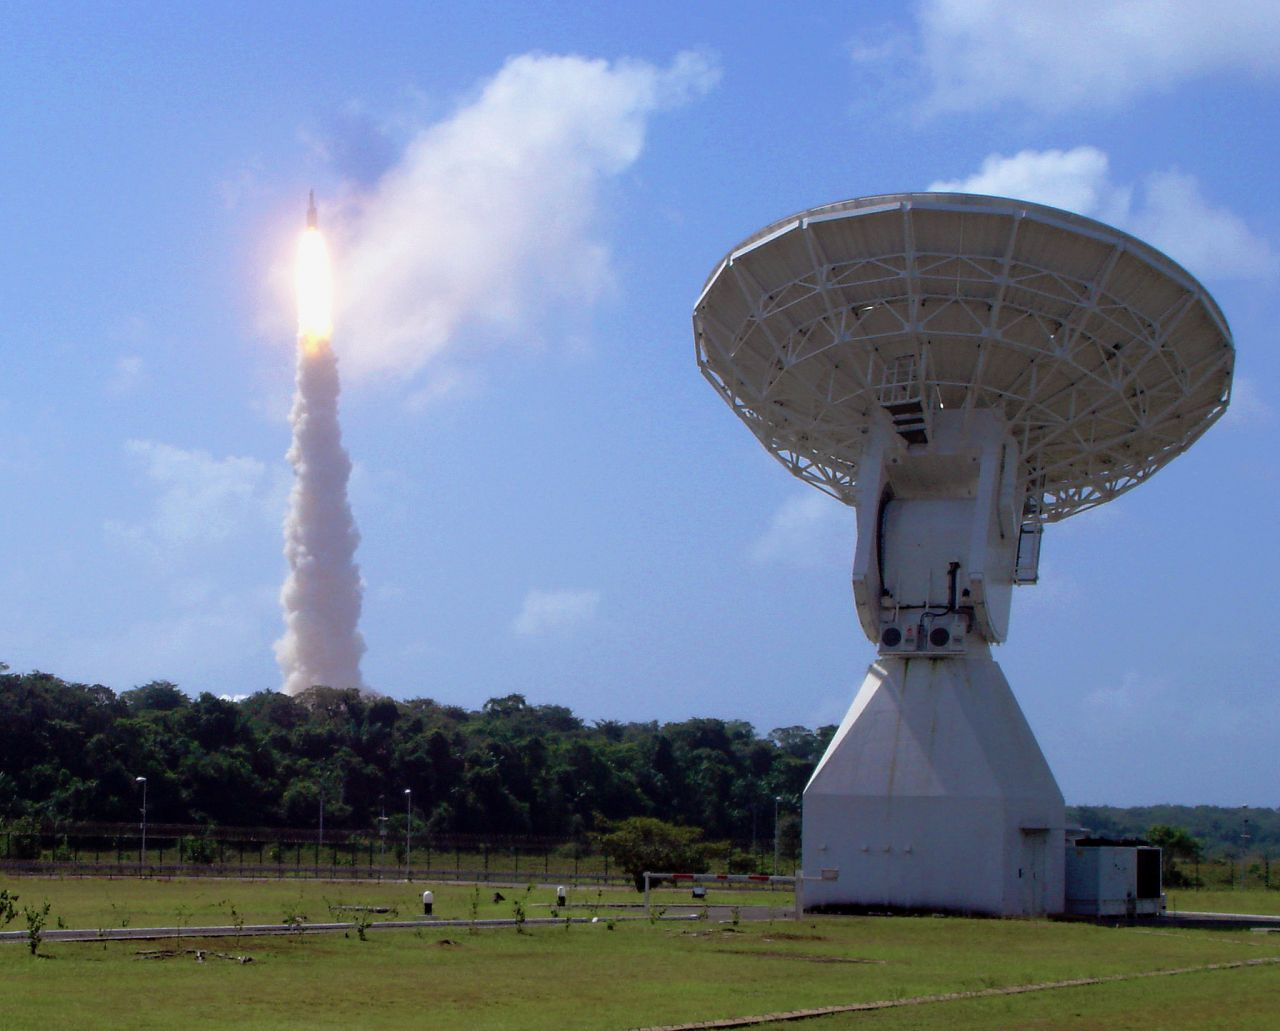 The Ariane 5 V188 launcher carrying Herschel and Planck rises above ESA's 15 m-diameter tracking dish at Kourou, French Guiana, on 14 May 2009.